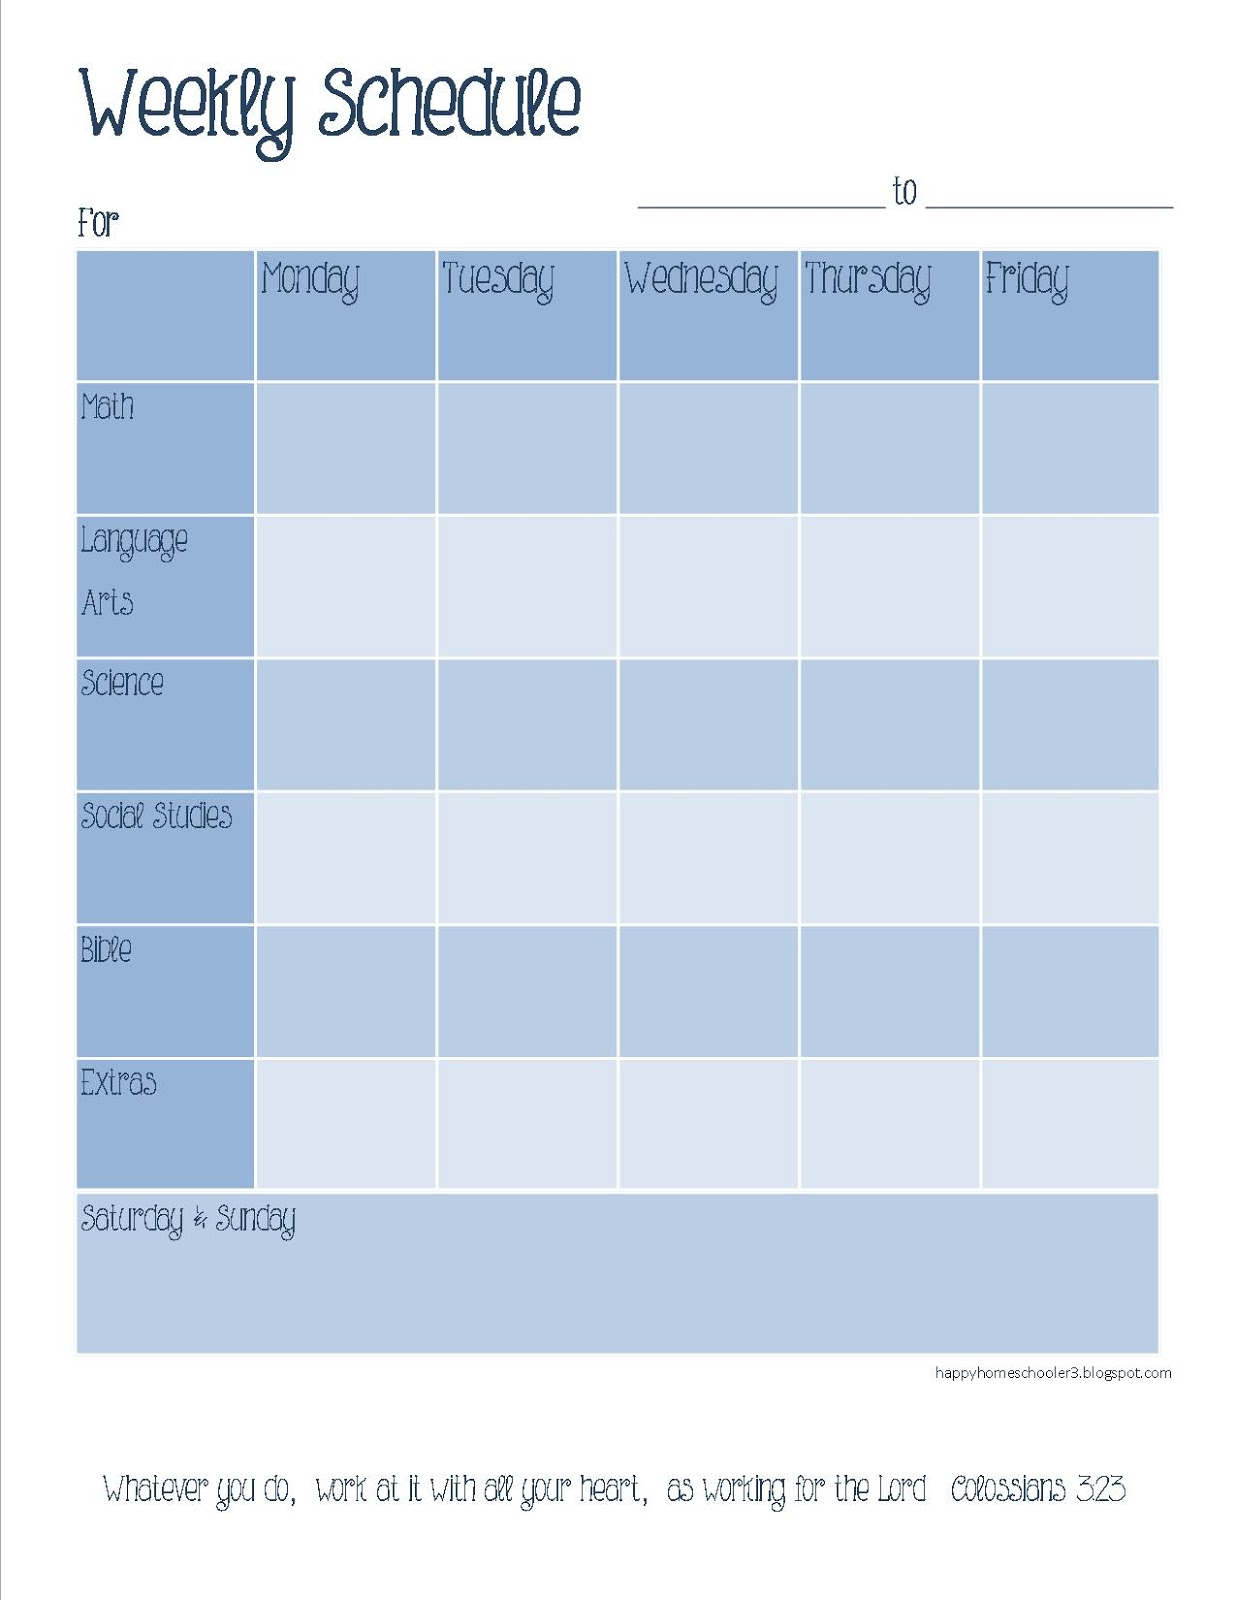 Weekly Calendar Schedule : Weekly time table new calendar template site